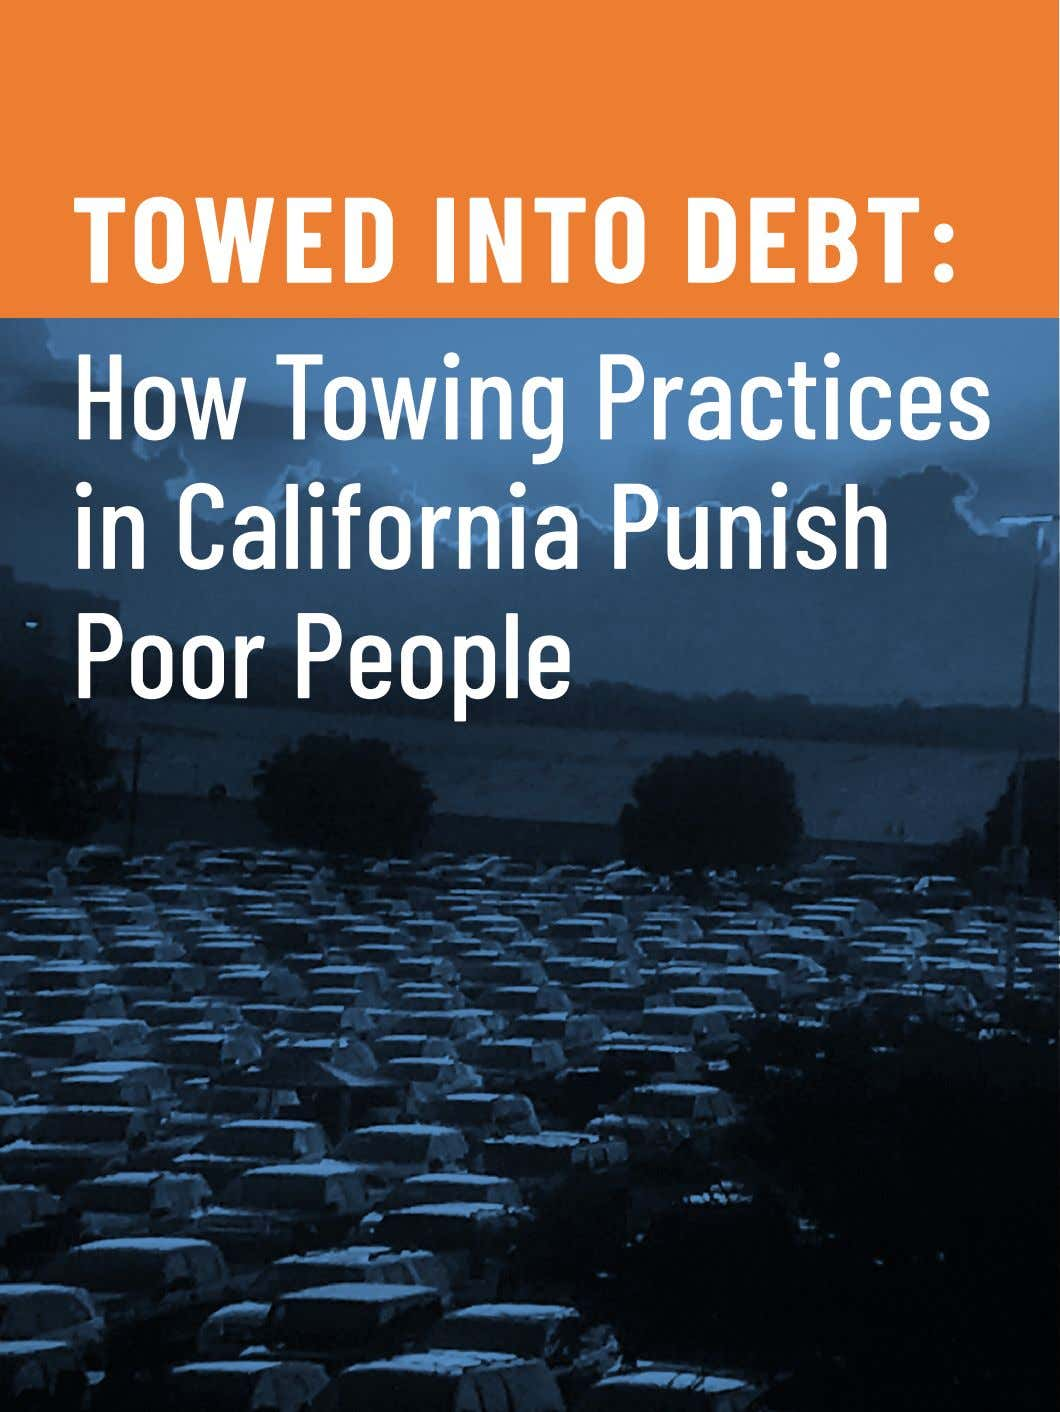 TOWED INTO DEBT: How Towing Practices in California Punish Poor People